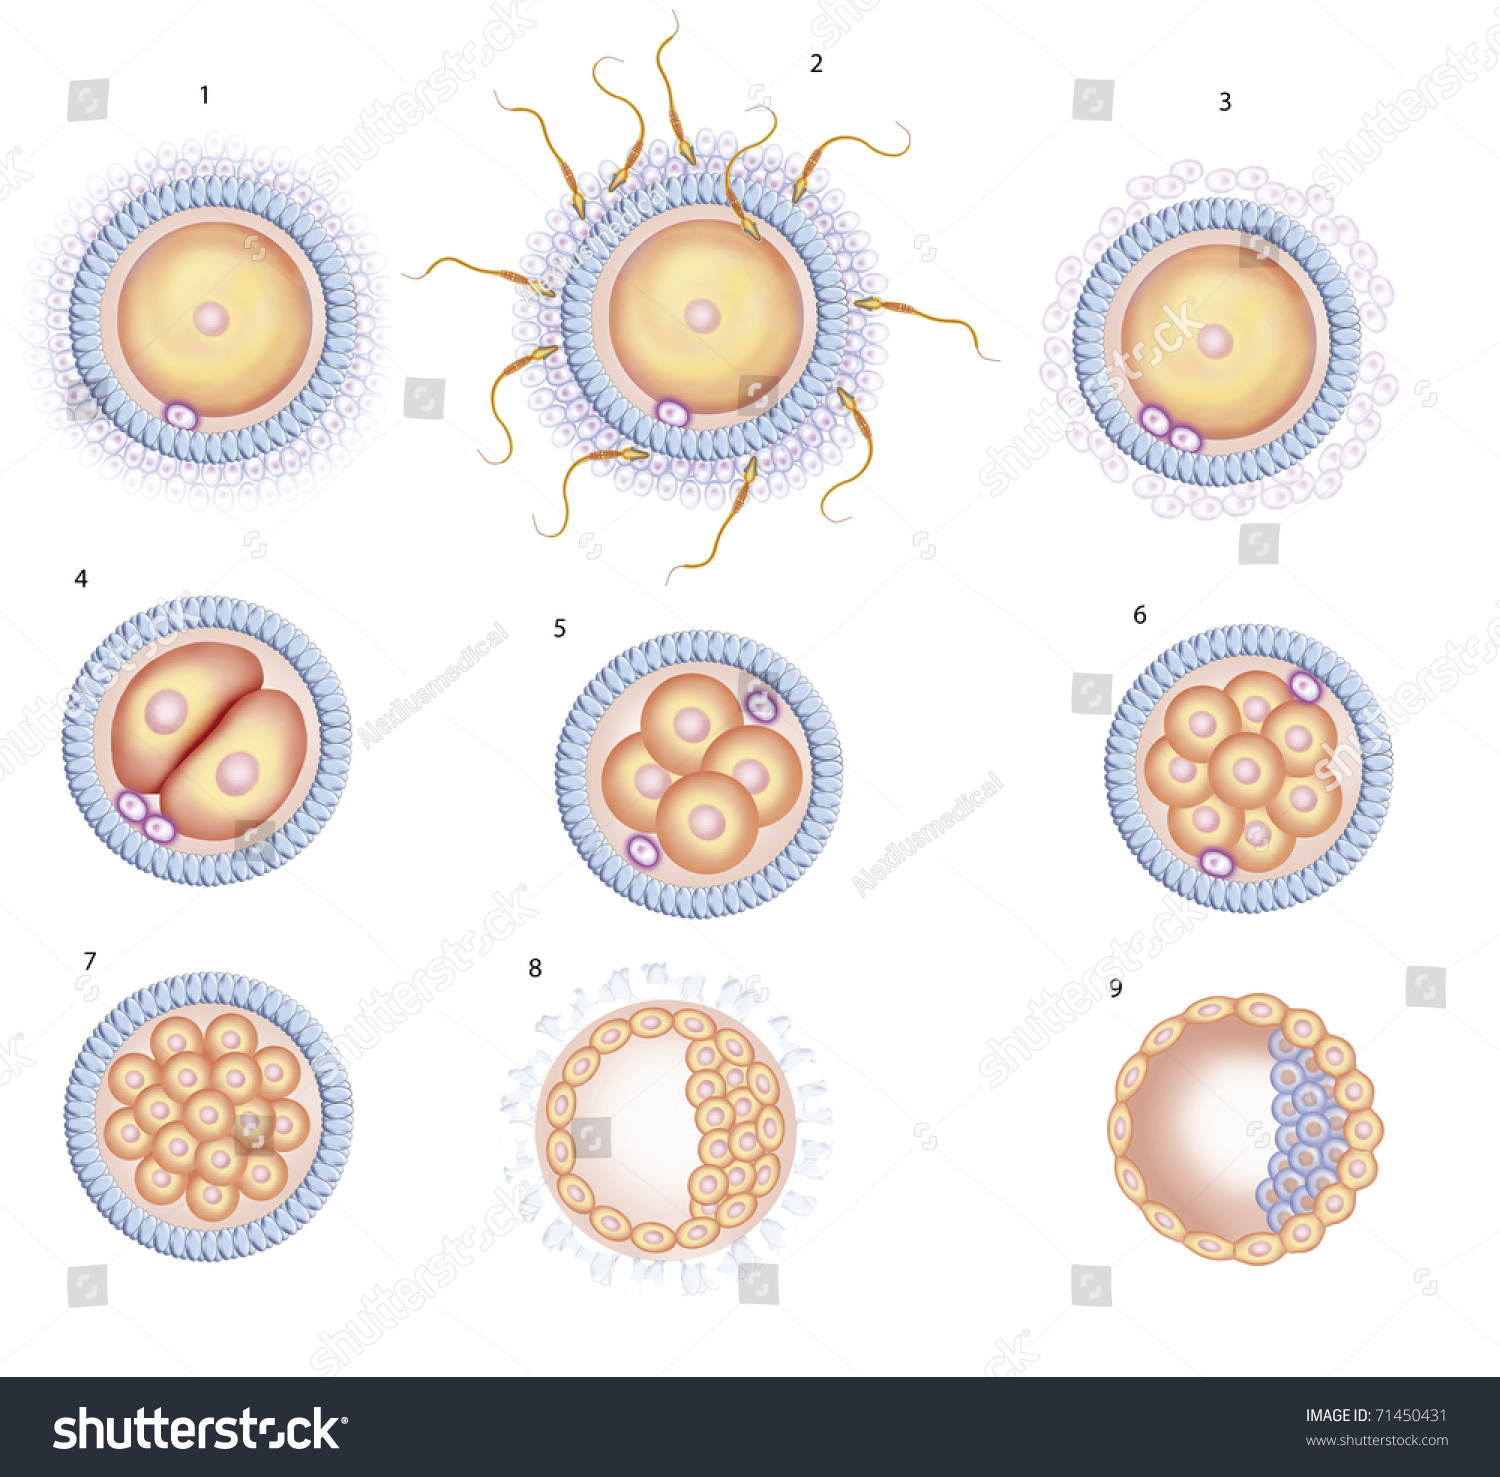 the process of cell multiplication Unit 1 discusses fertilization, the first cell division, mitosis, early pregnancy factor,  as well as  to 30 hours after fertilization12 the process of repeated cell division  is called cleavage13  mitosis – dynamic division, magnificent multiplication.